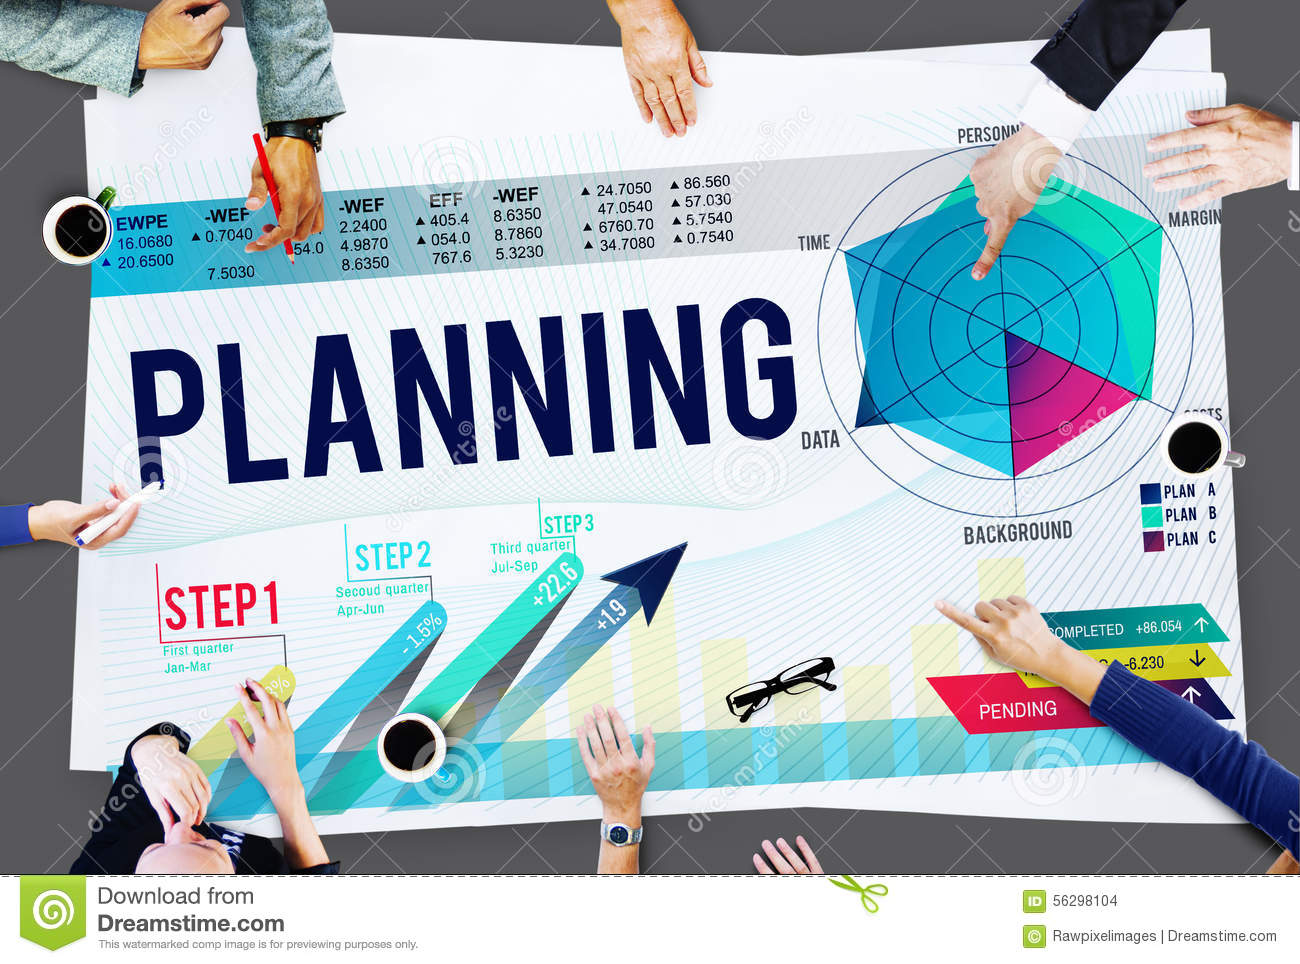 private concepts business plan analysis Charter school business plan teaching sessions focus on helping students grasp the concepts they will need to know to perform well in market analysis summary.